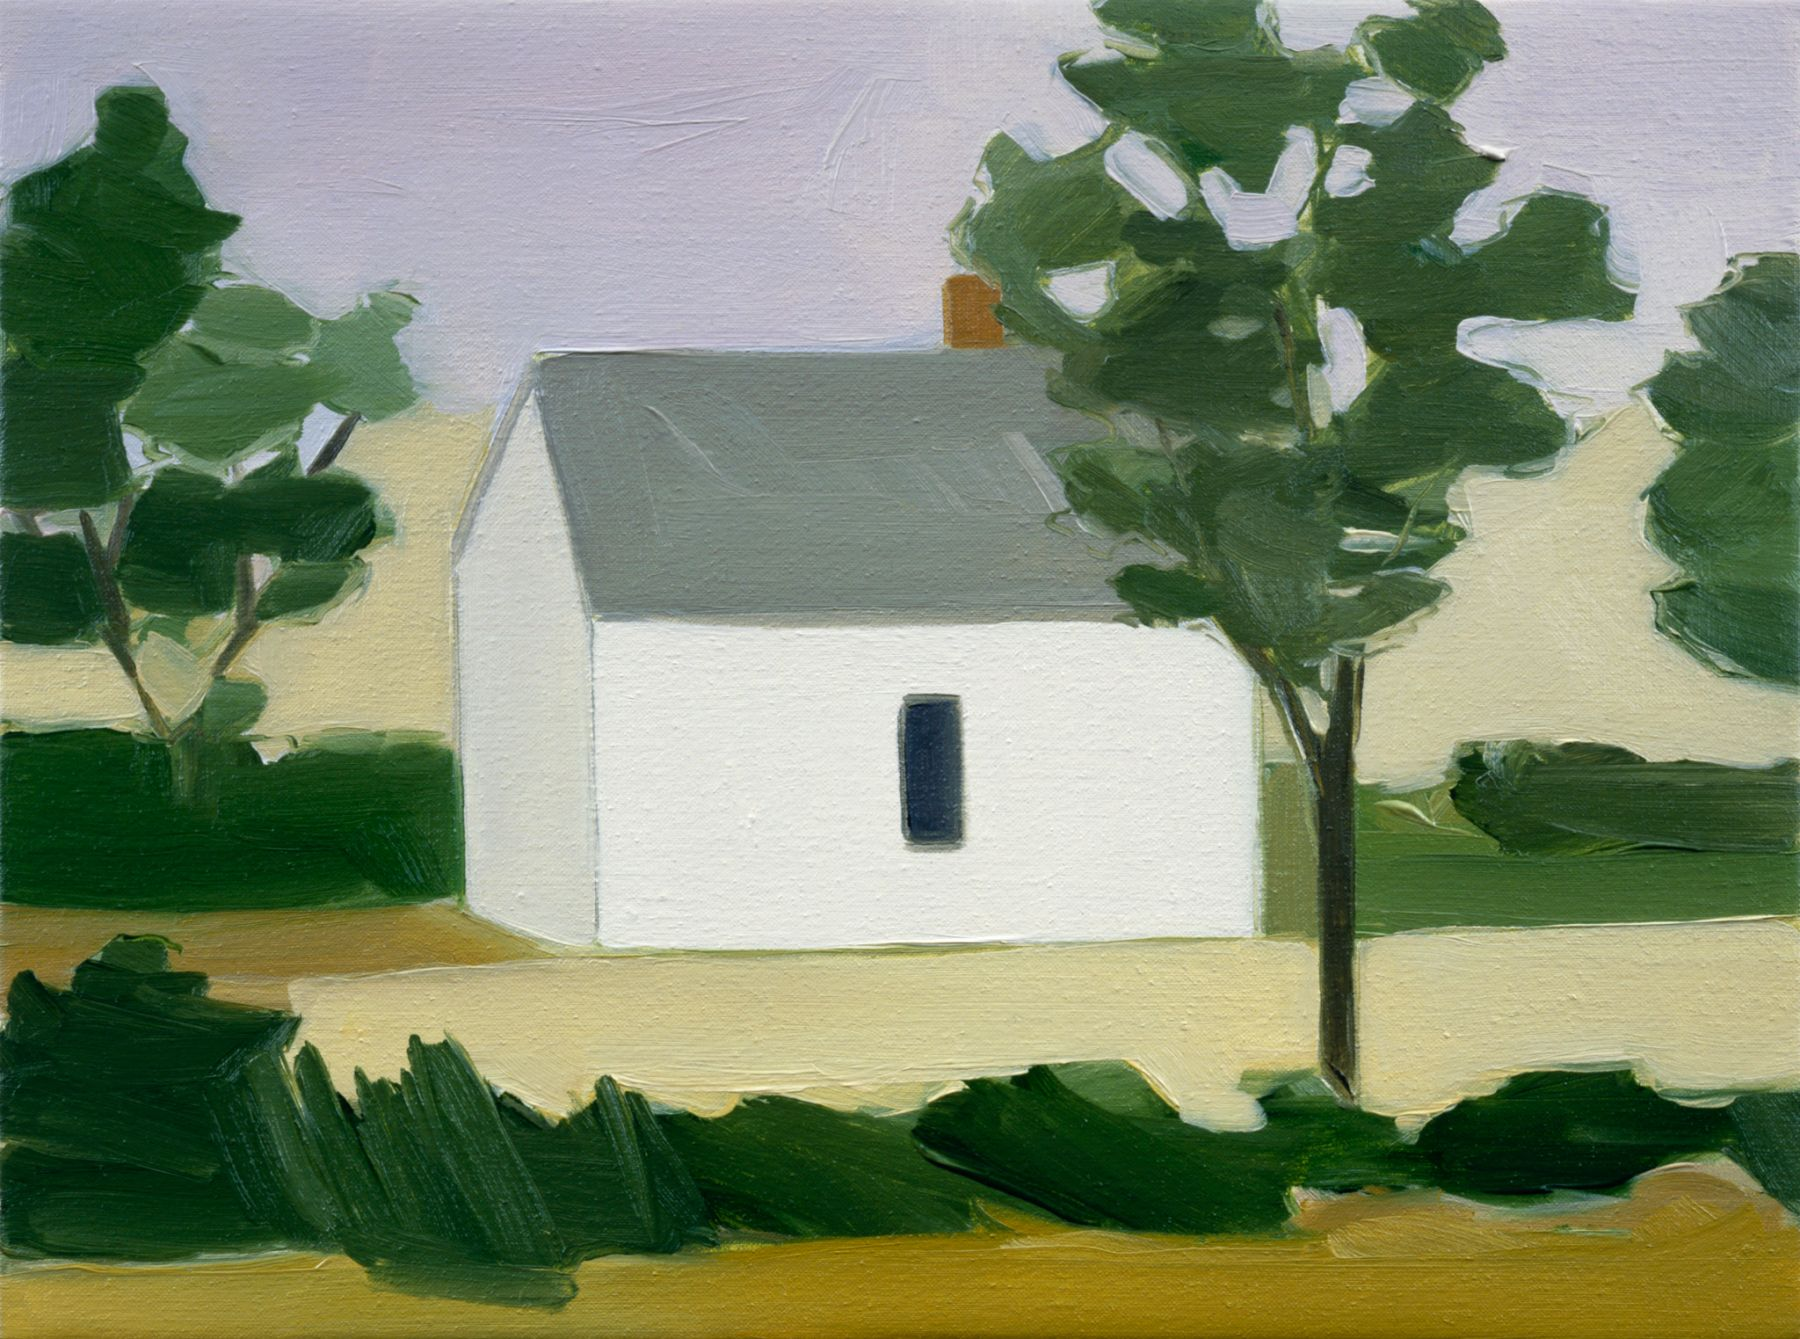 Maureen Gallace, Going Home with Erik, 2001